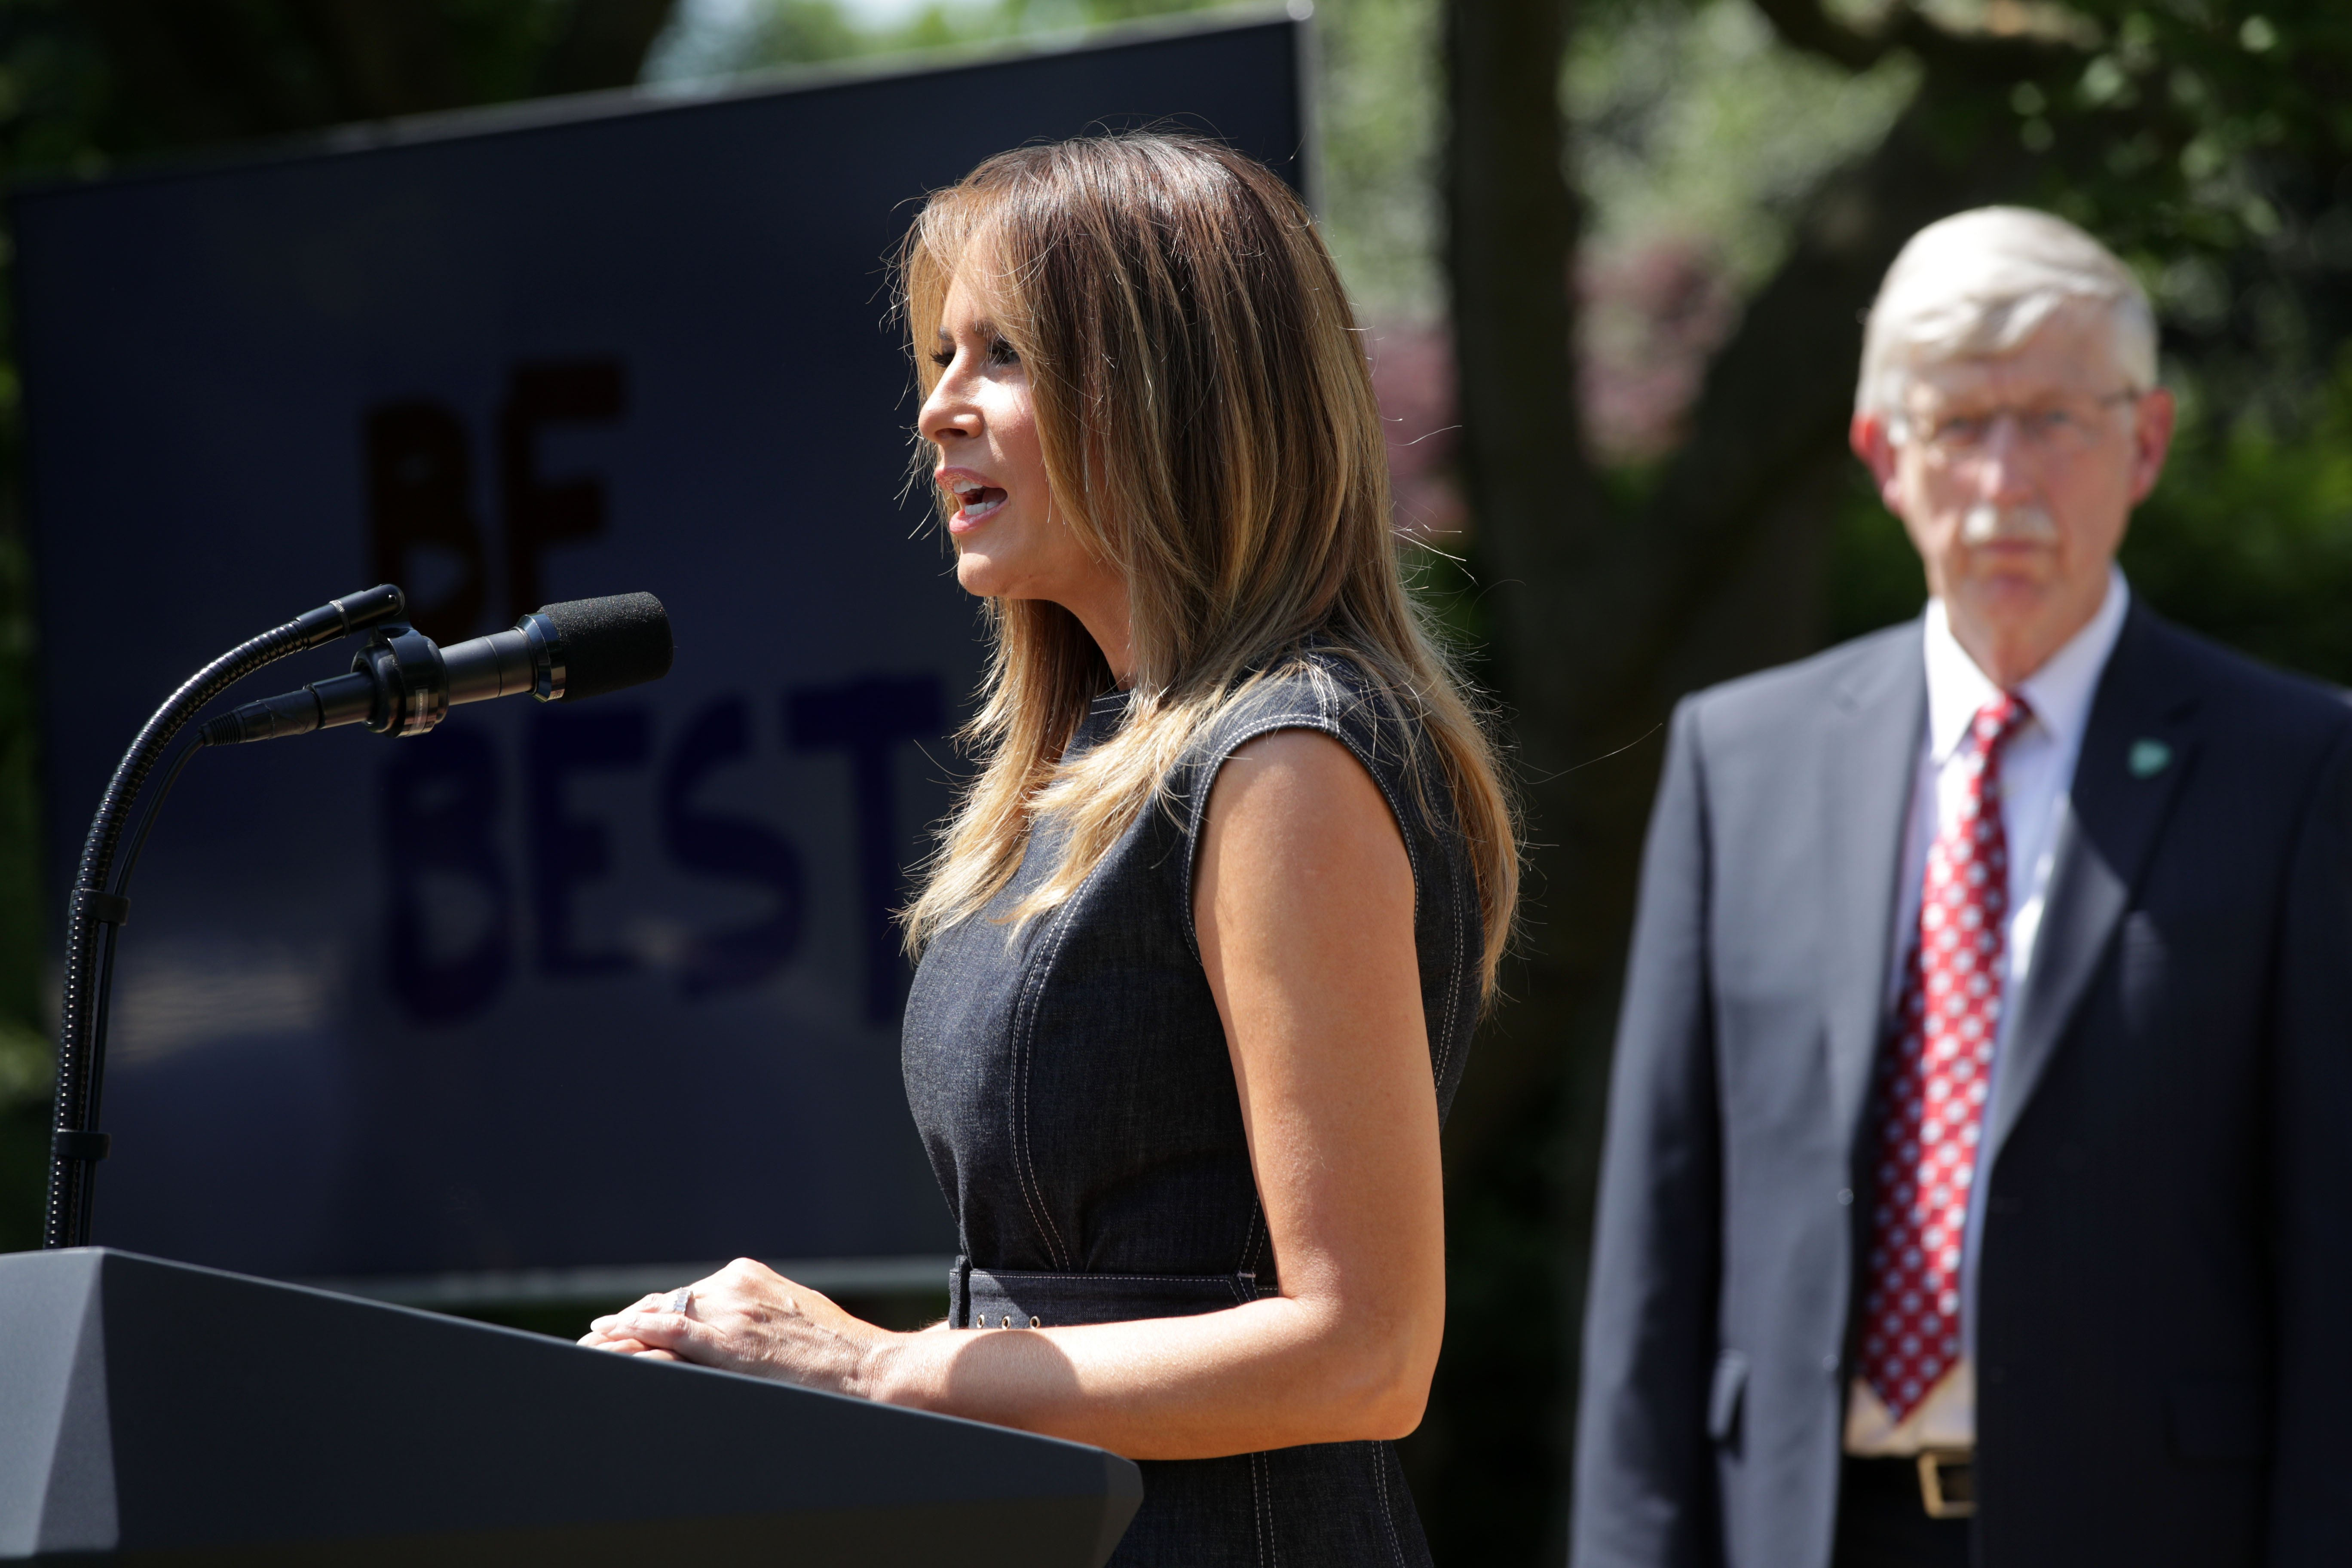 Melania Trump delivering a speech during a Rose Garden event at the White House to celebrate the first birthday of the Be Best campaign | Photo: Getty Images